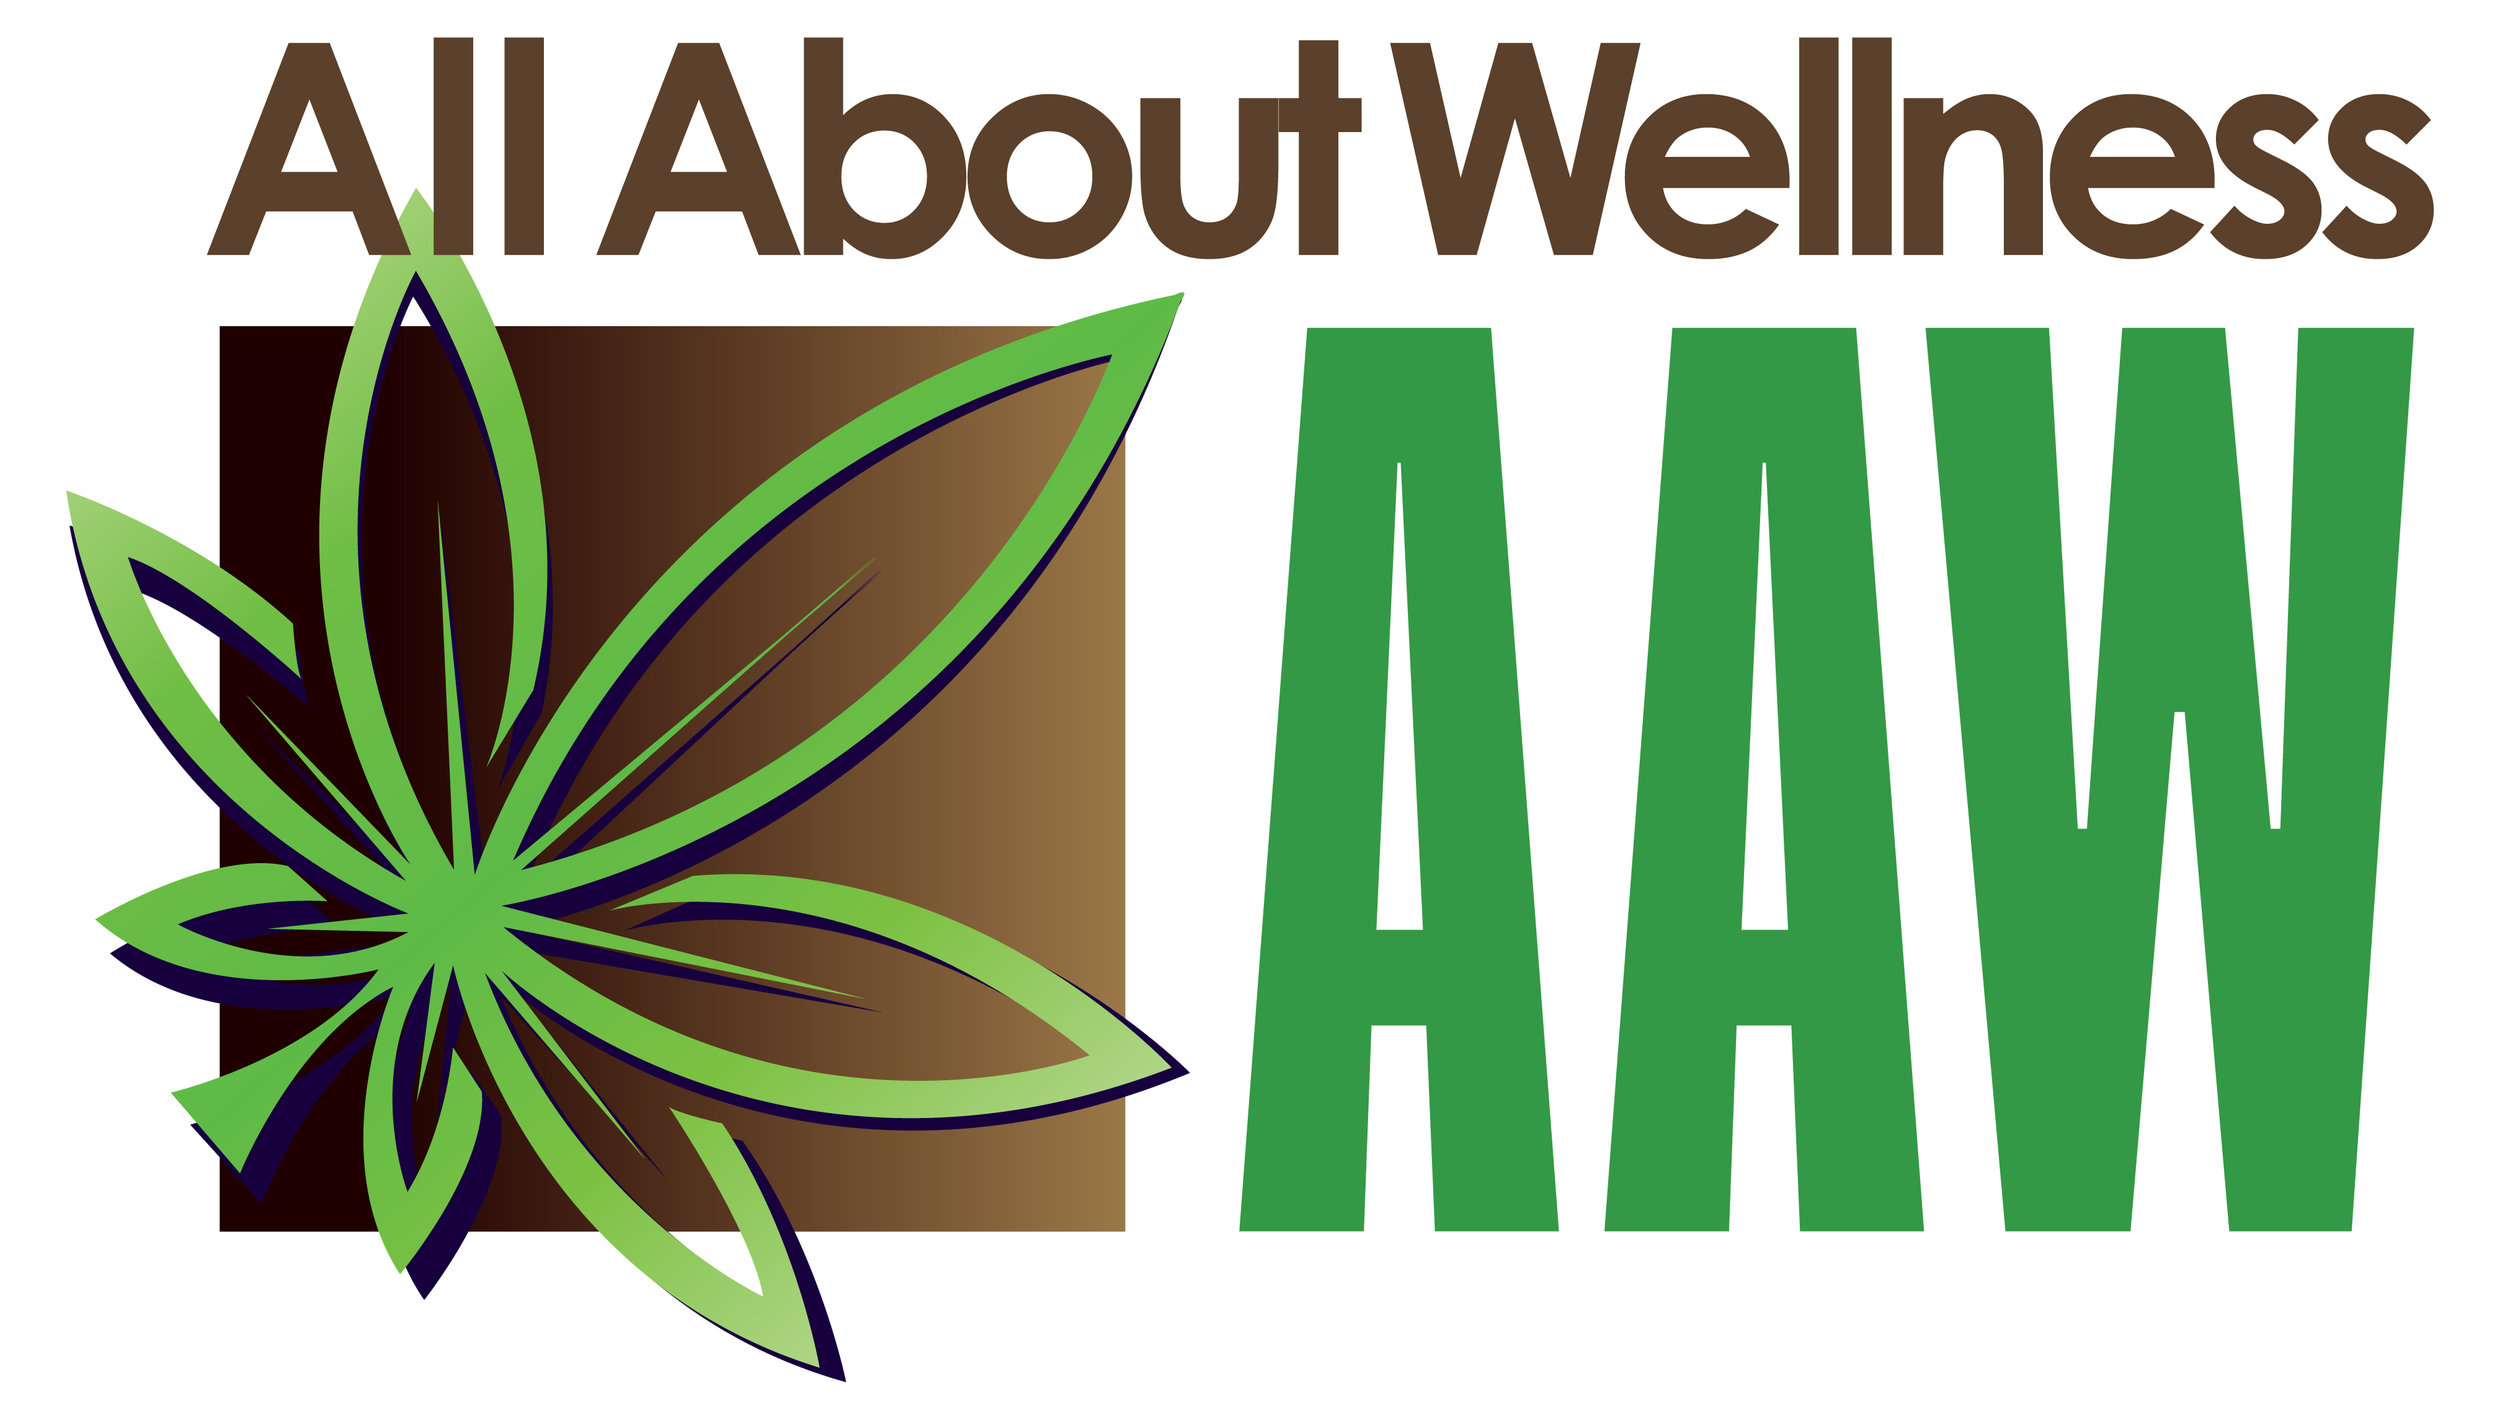 All About Wellness